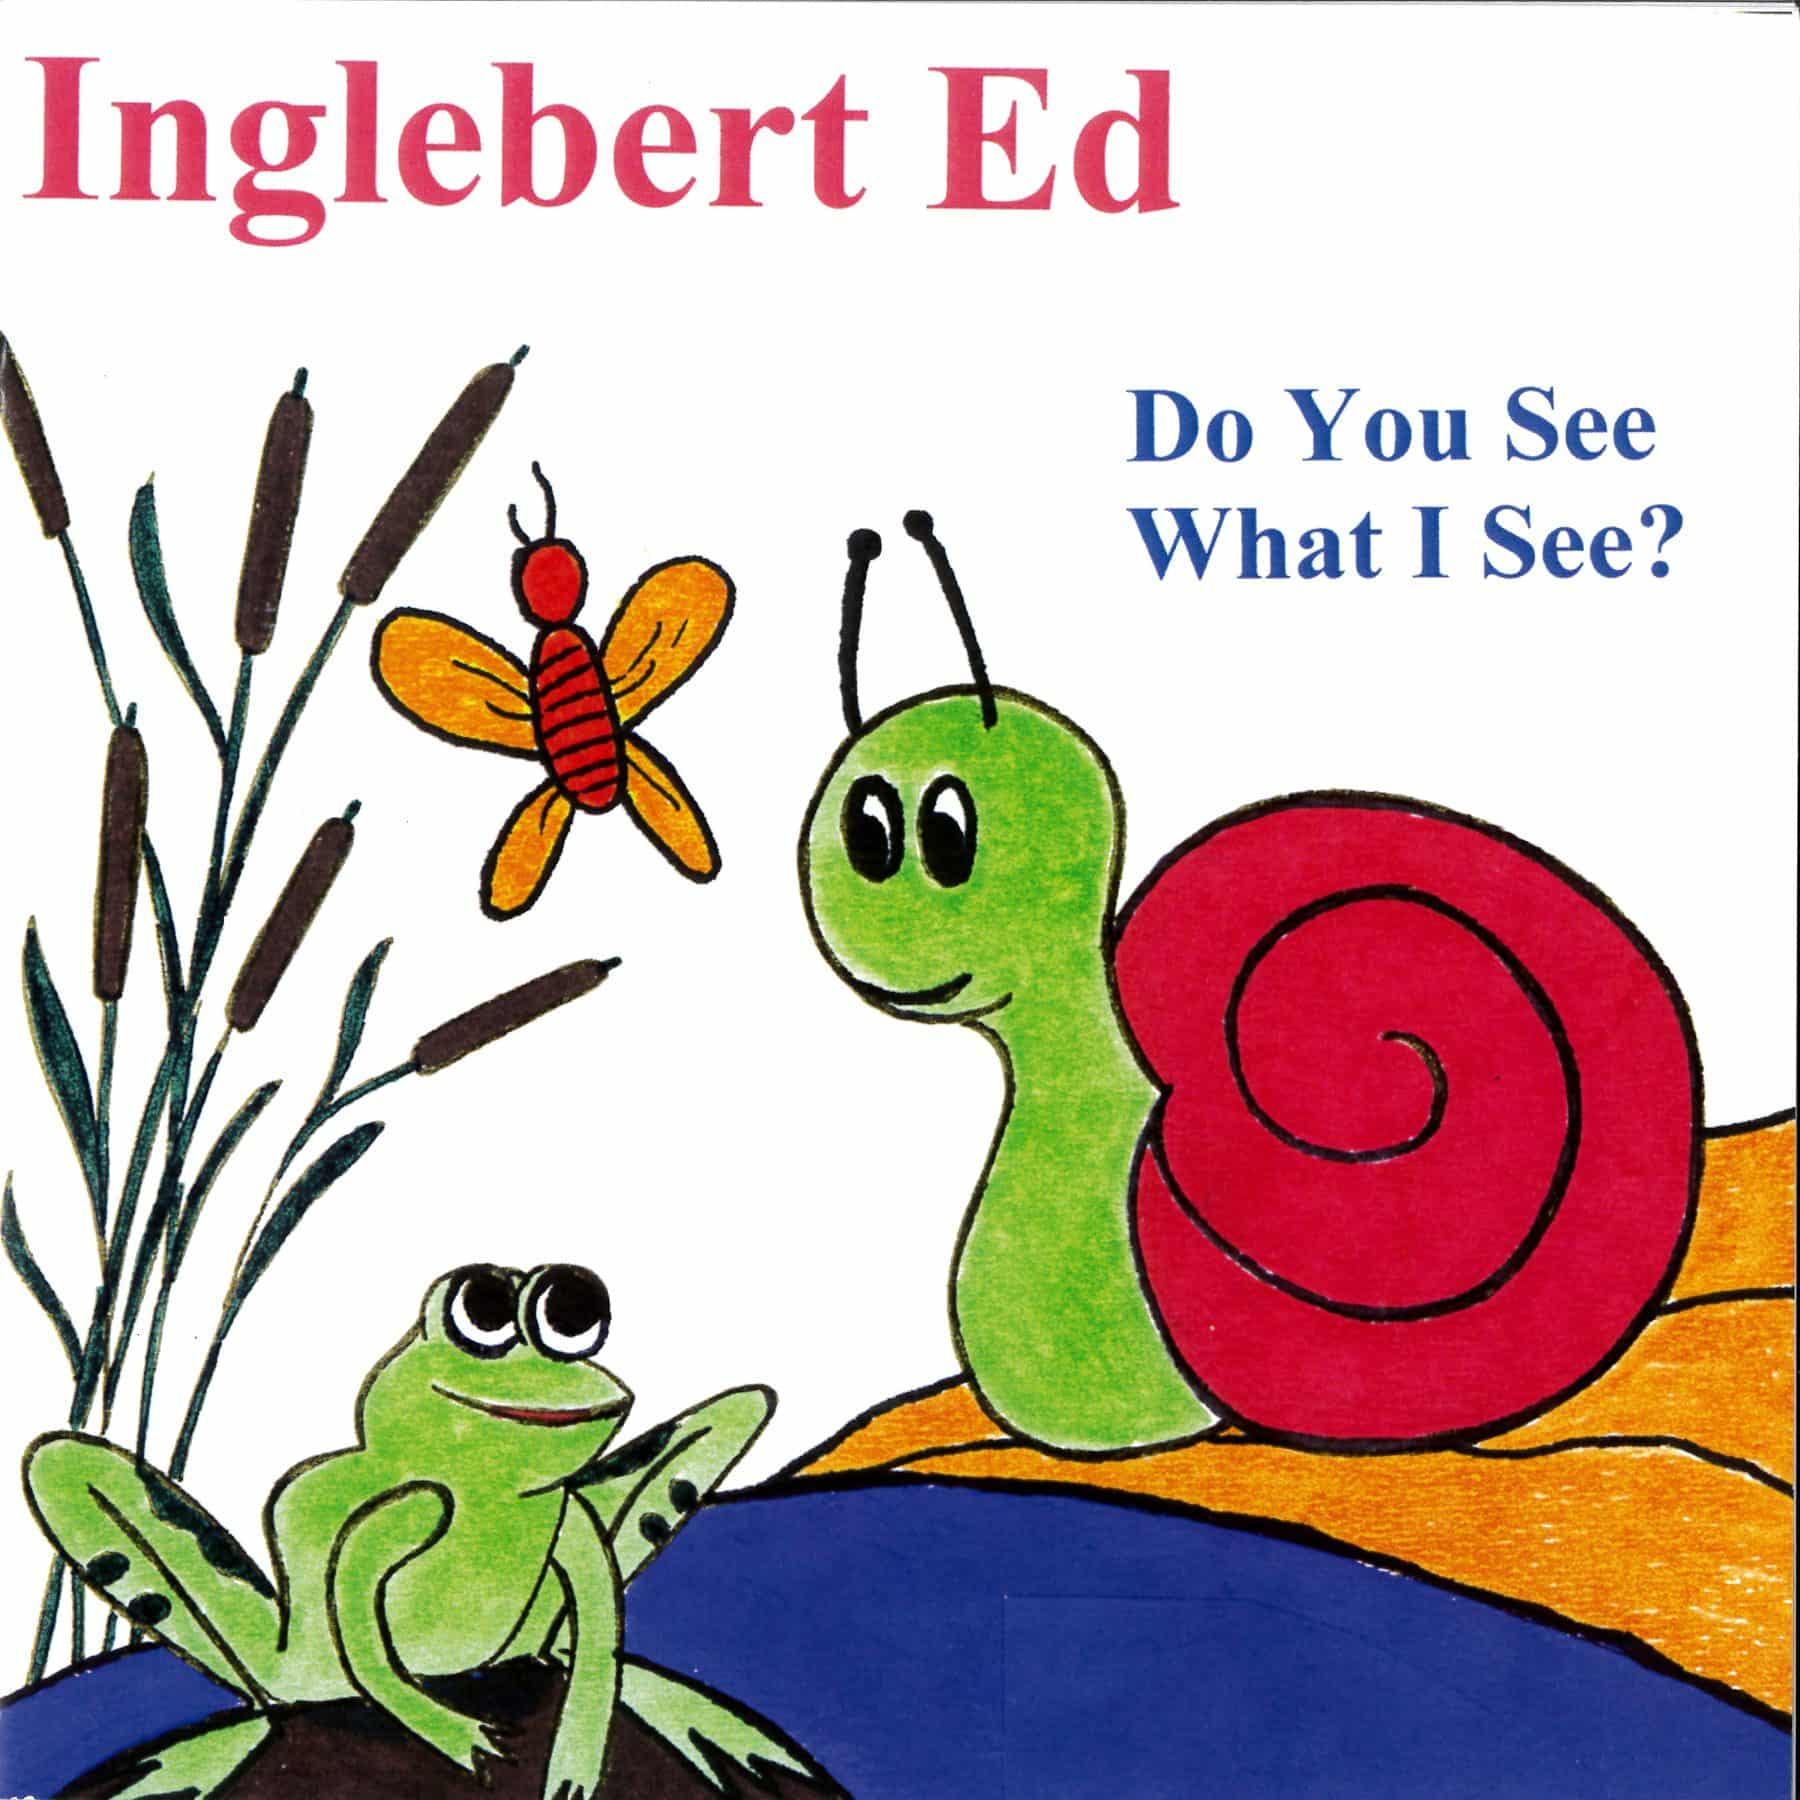 Inglebert Ed - Do You See What I See?